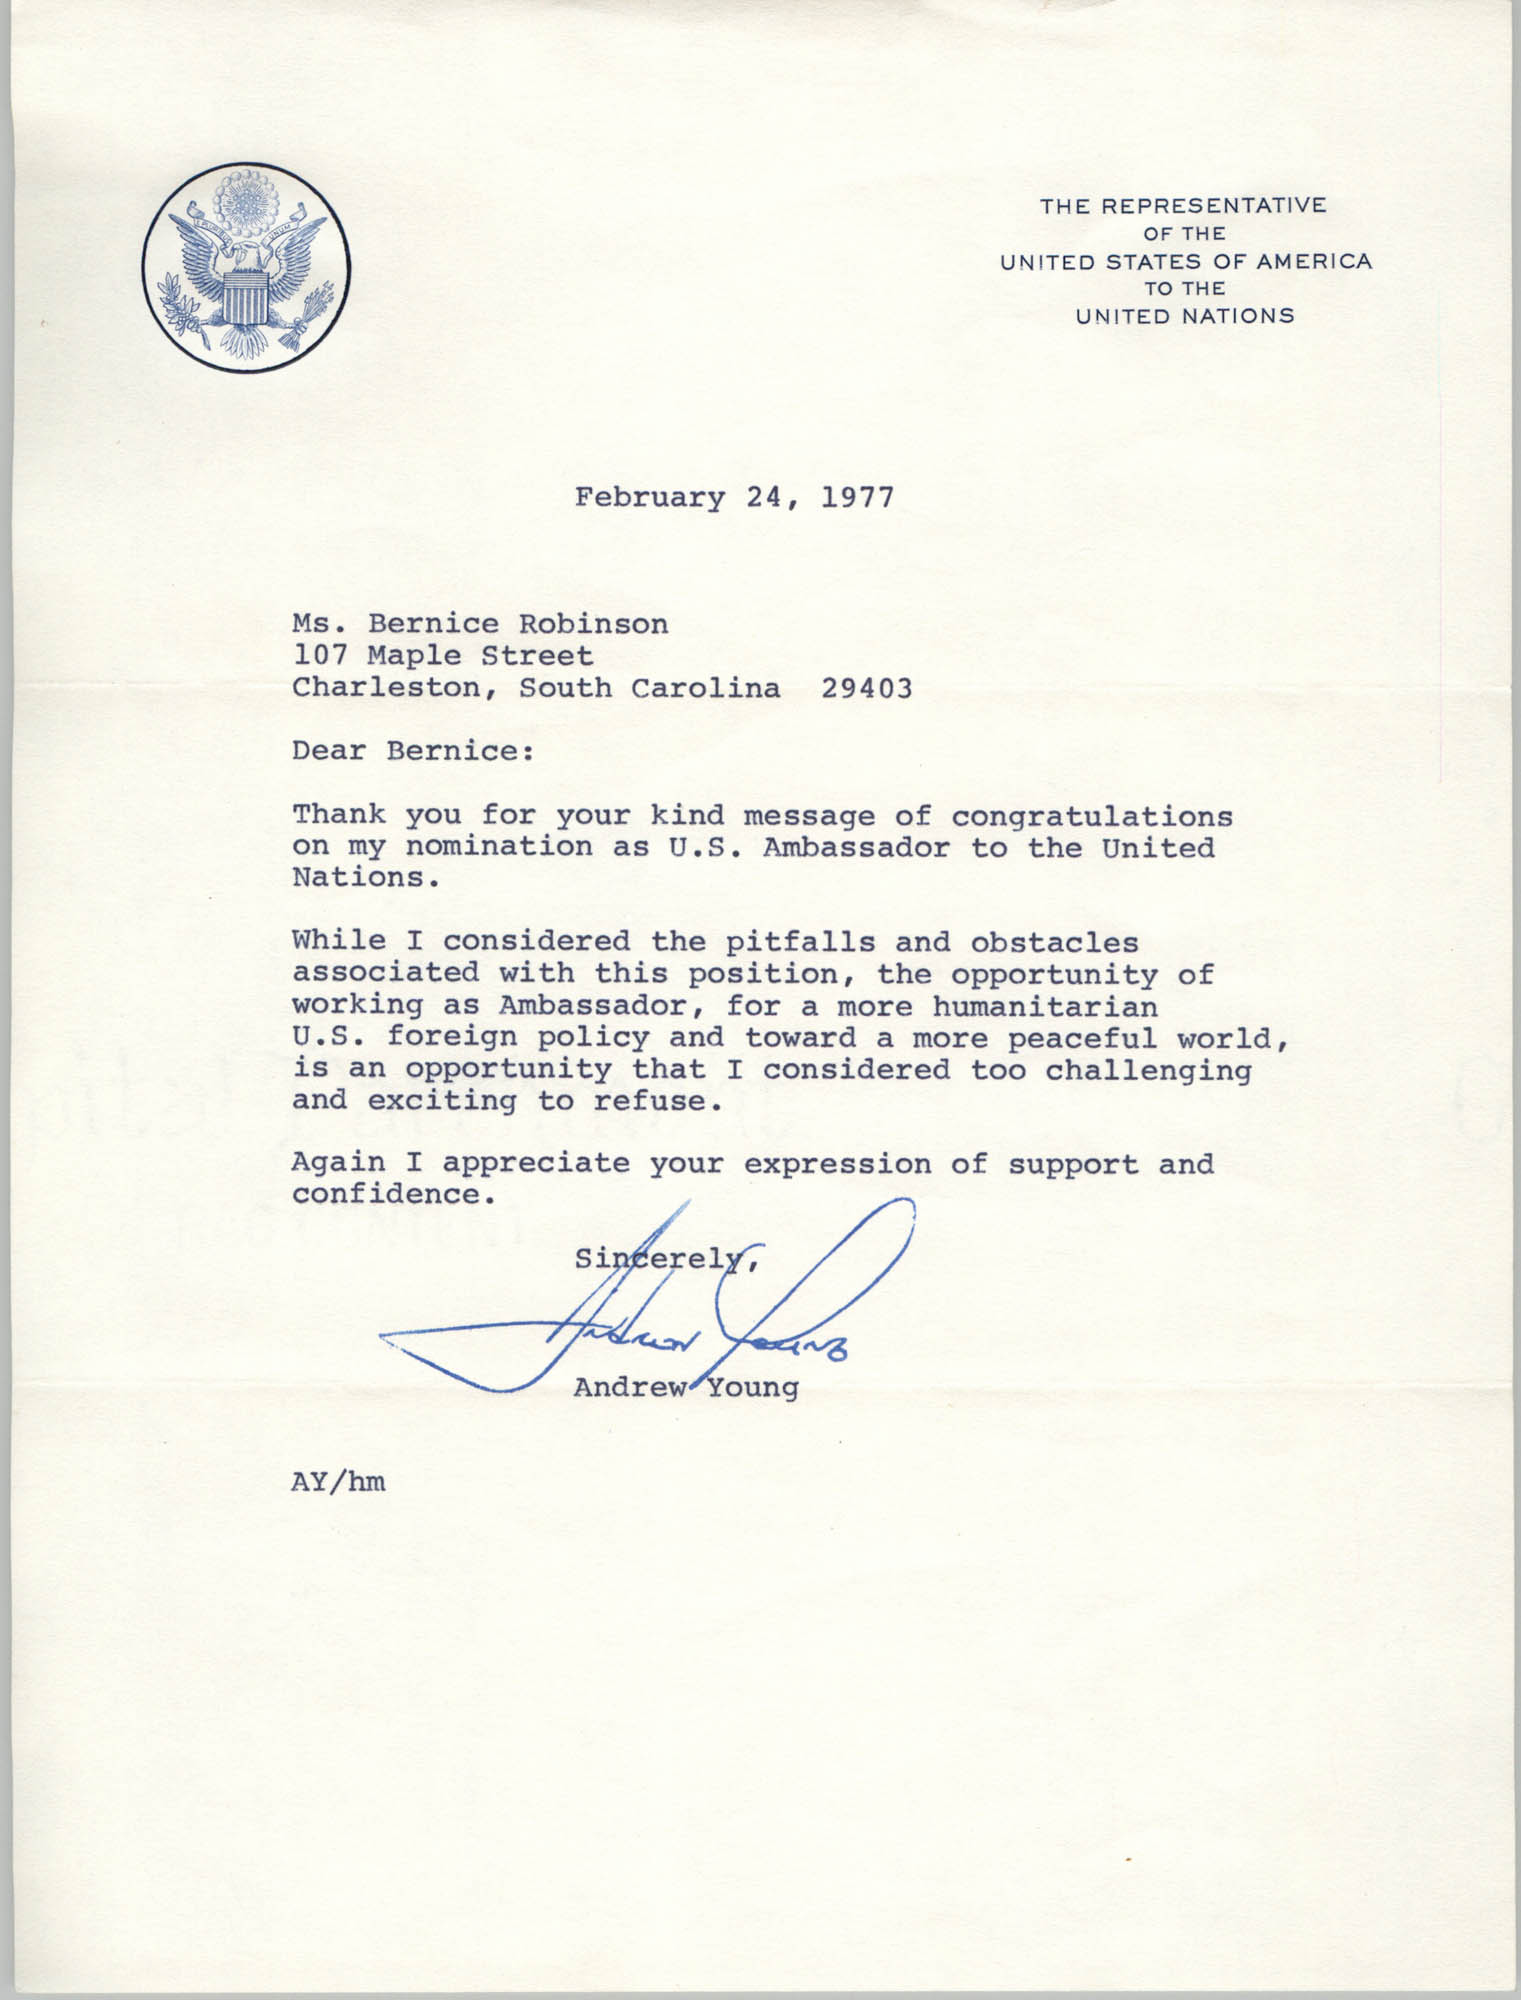 Letter from Andrew Young to Bernice Robinson, February 24, 1977